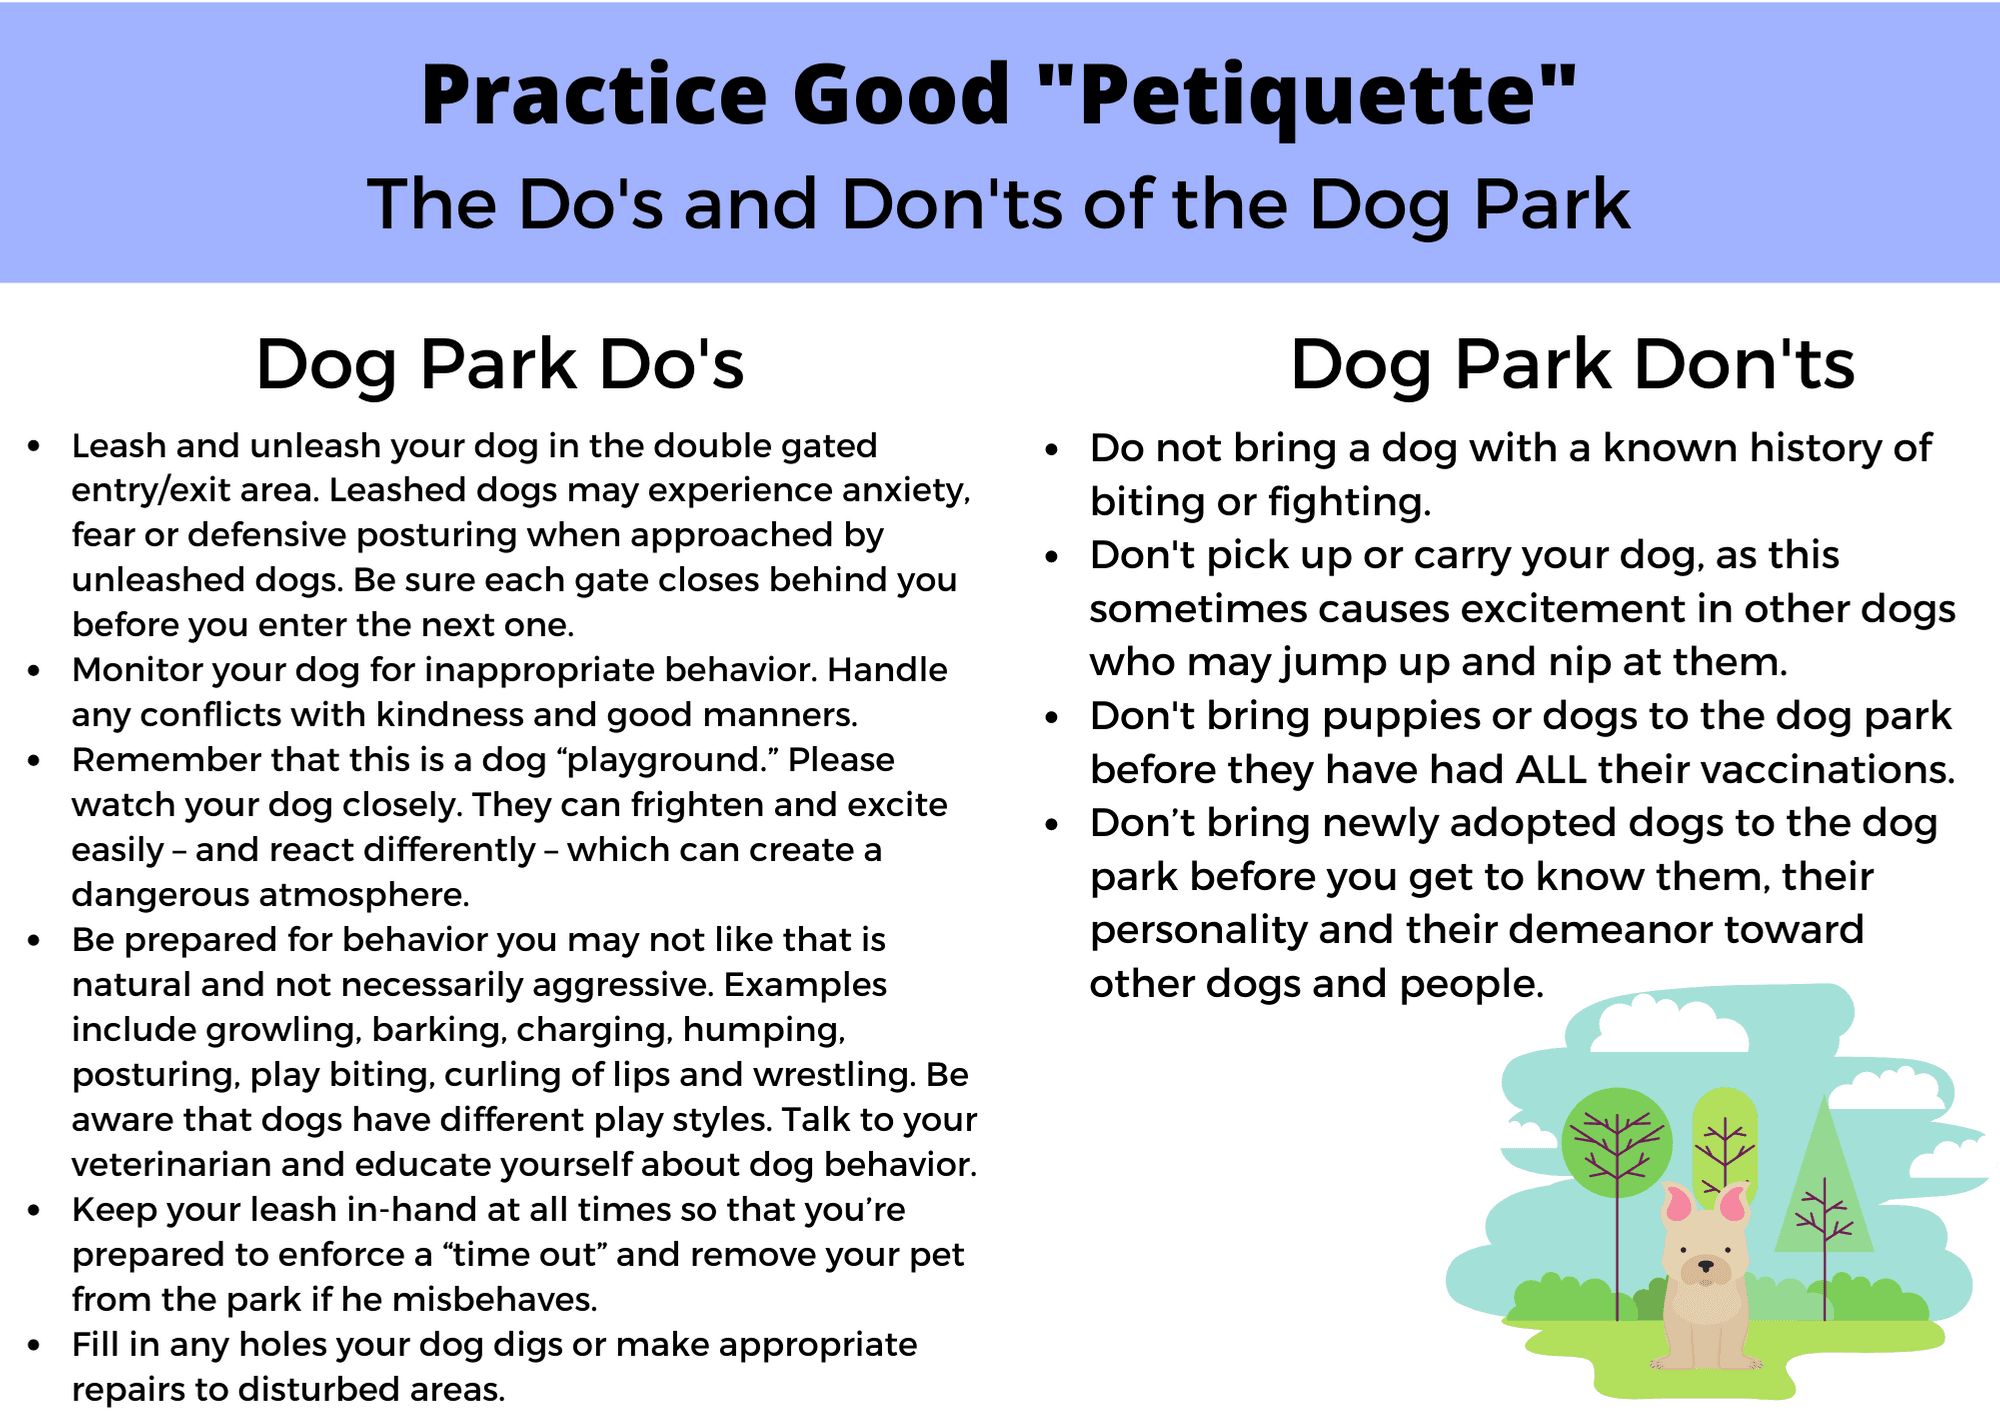 Dog Park Do's and Don'ts